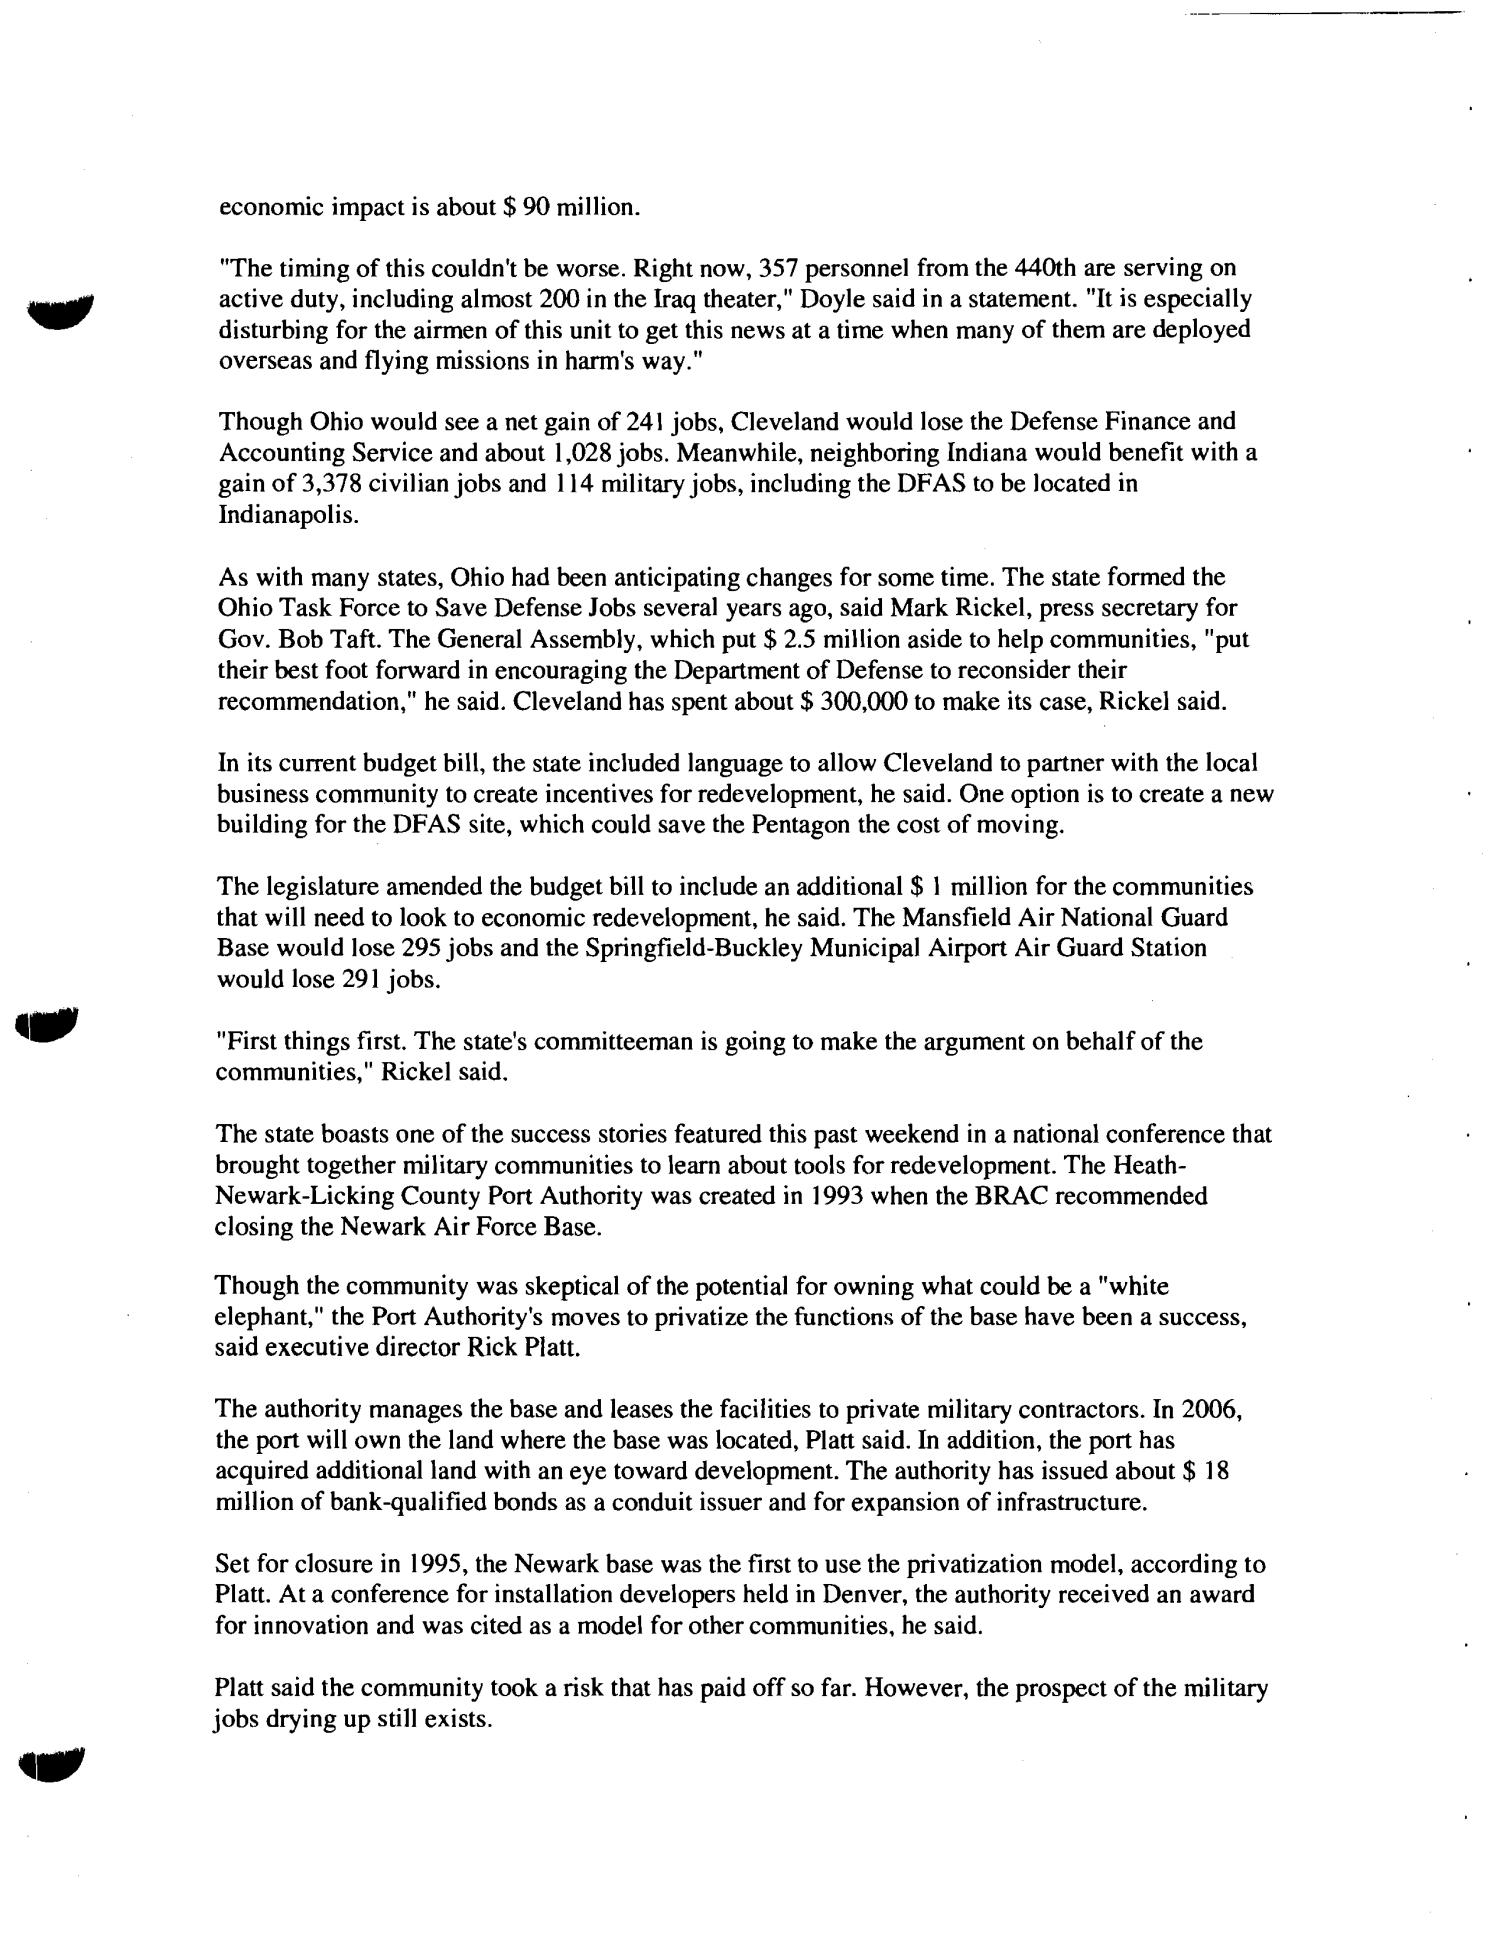 RH3 Media Hearing Book - June 20, 2005 St Louis, MO                                                                                                      [Sequence #]: 75 of 81